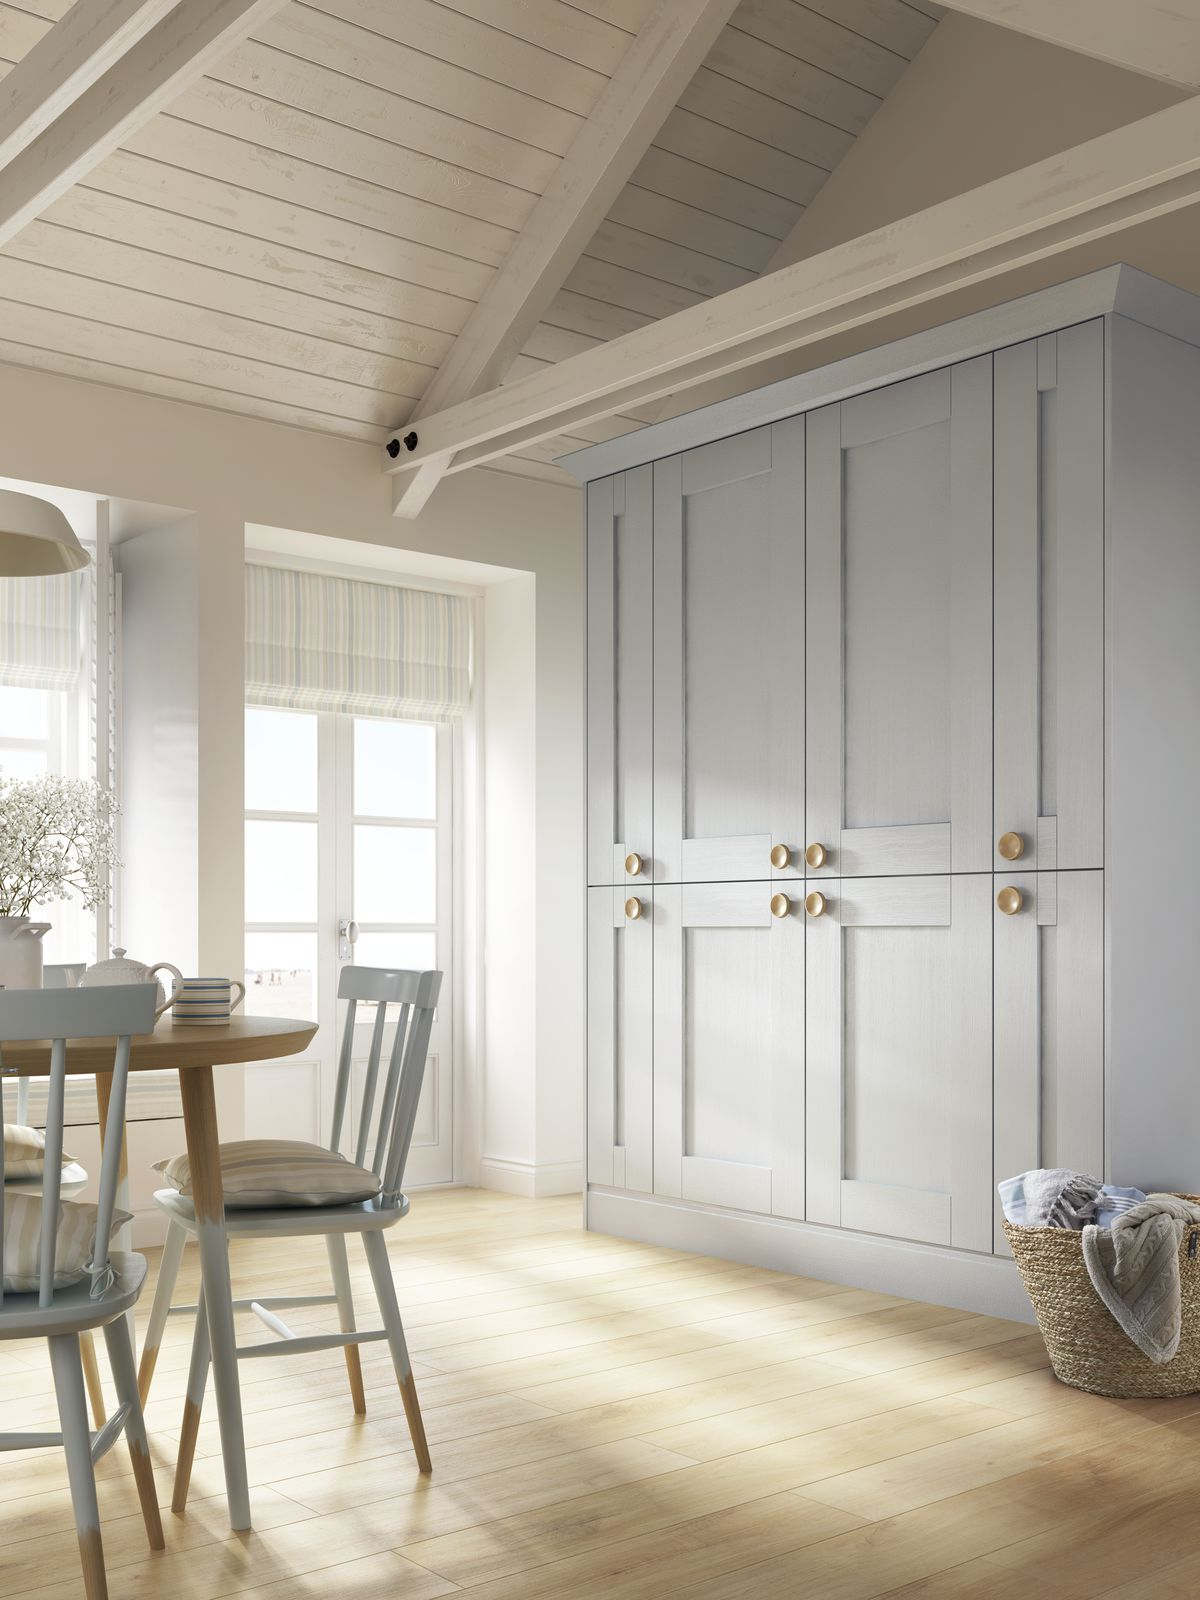 whitby collection laura ashley glotech kitchens. Black Bedroom Furniture Sets. Home Design Ideas